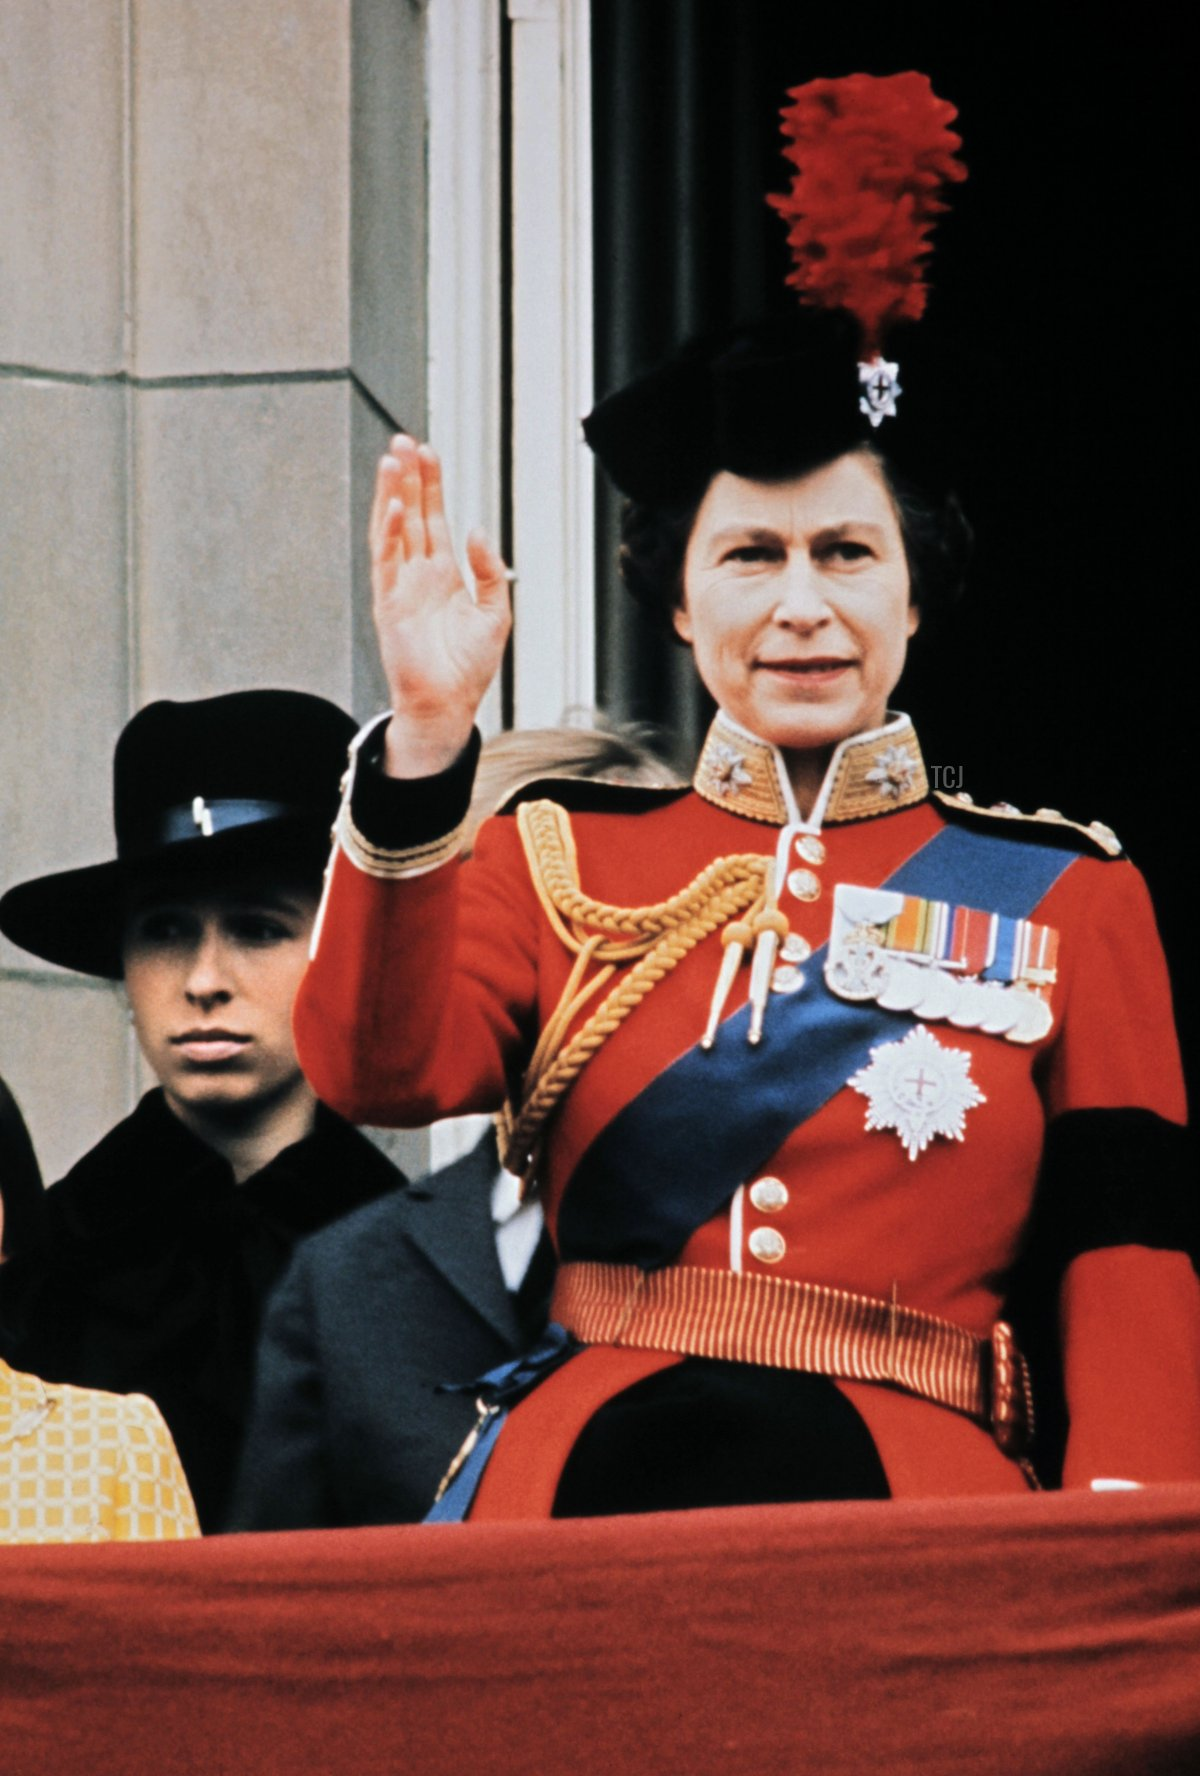 Britain's Queen Elizabeth II (R) waves to the crowd on June 03, 1972 from the balcony of Buckingham Palace in London, during the Trooping the Colour ceremony